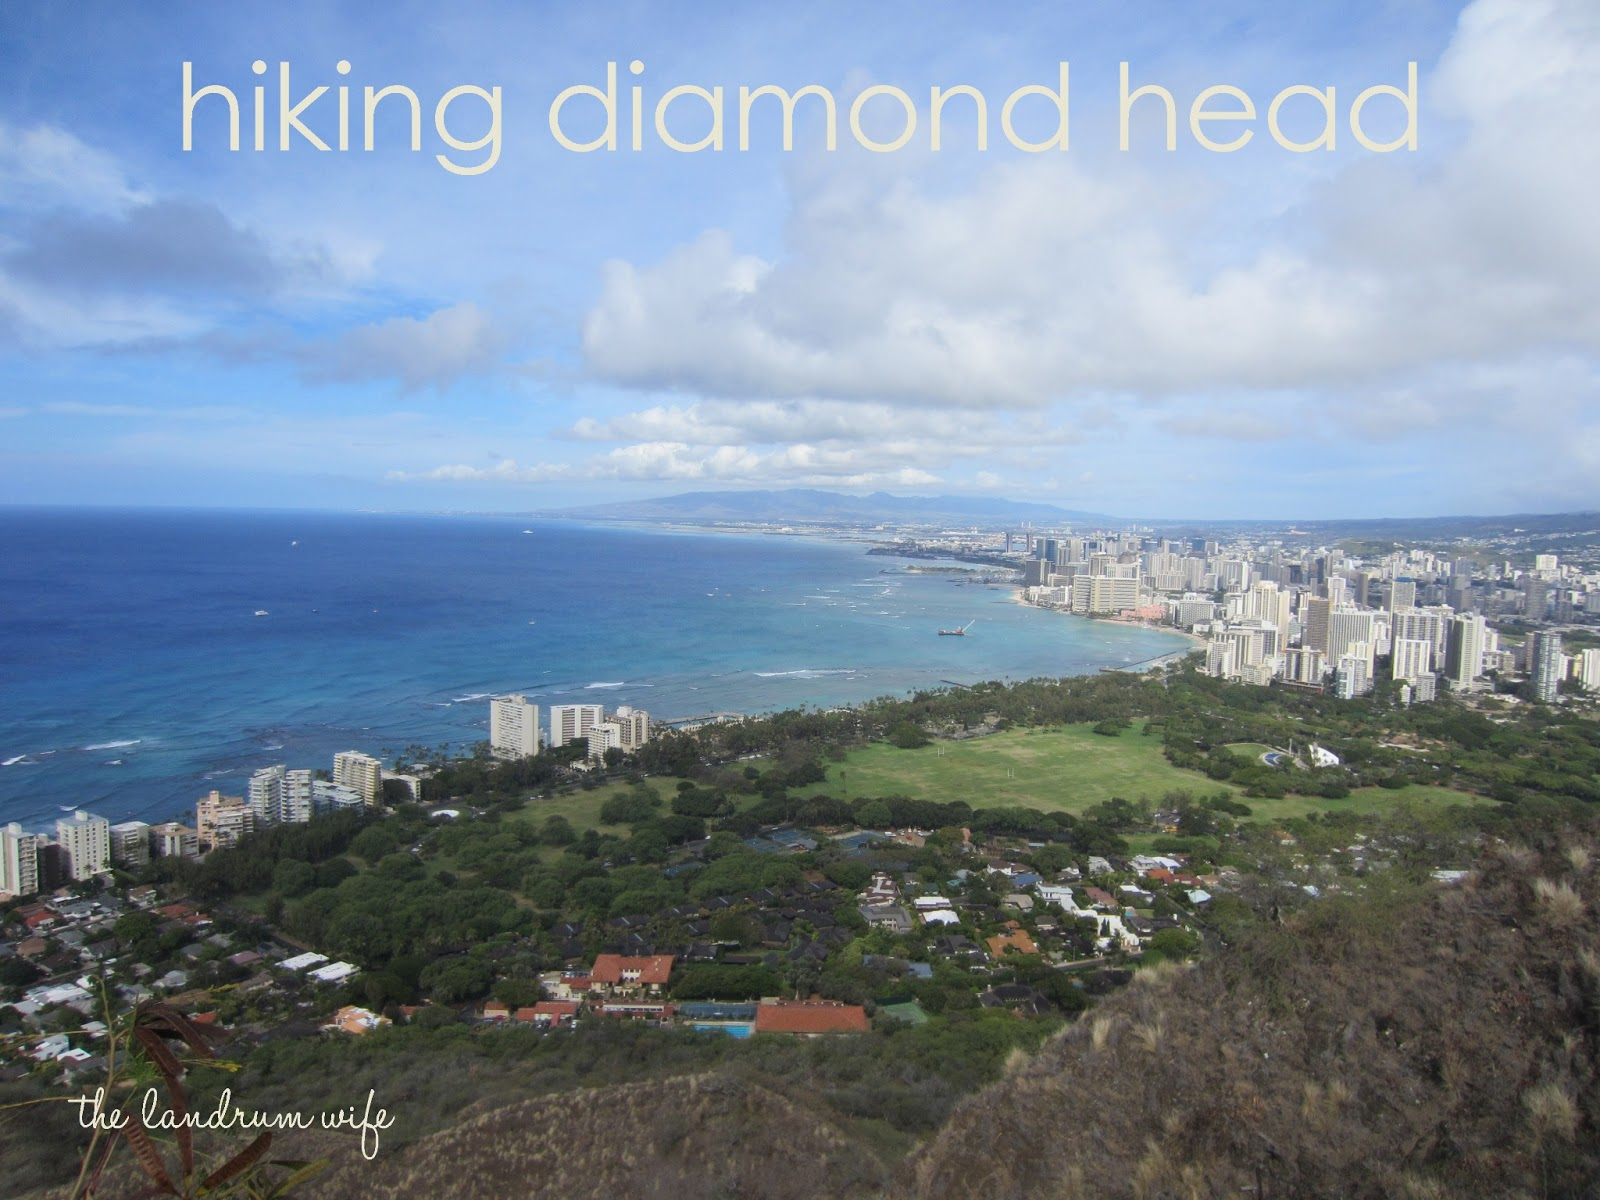 Diamond Head Dog Park